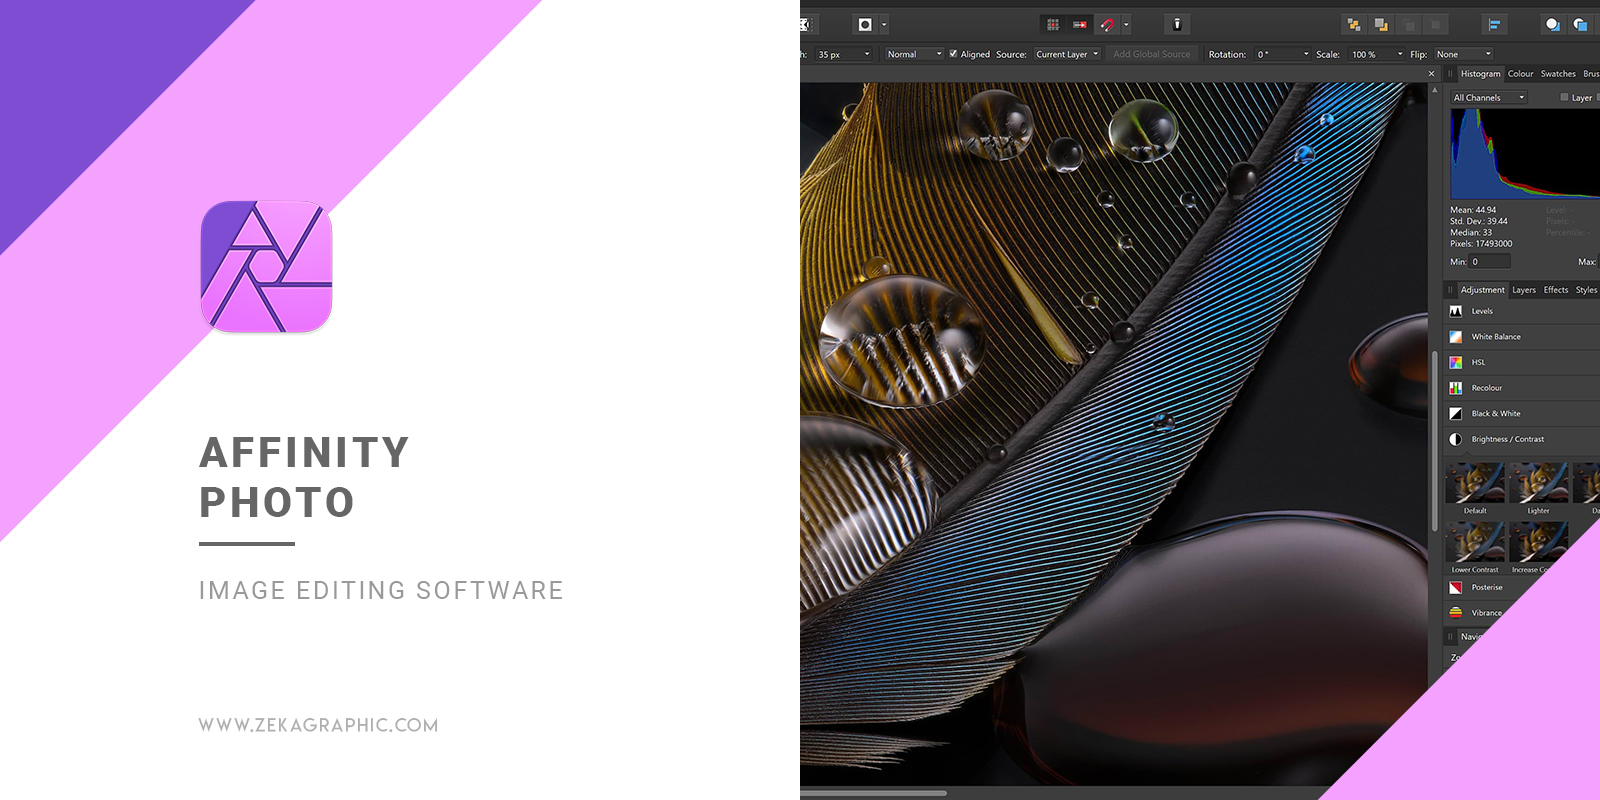 Affinity Photo Image Editing Software for Graphic Design